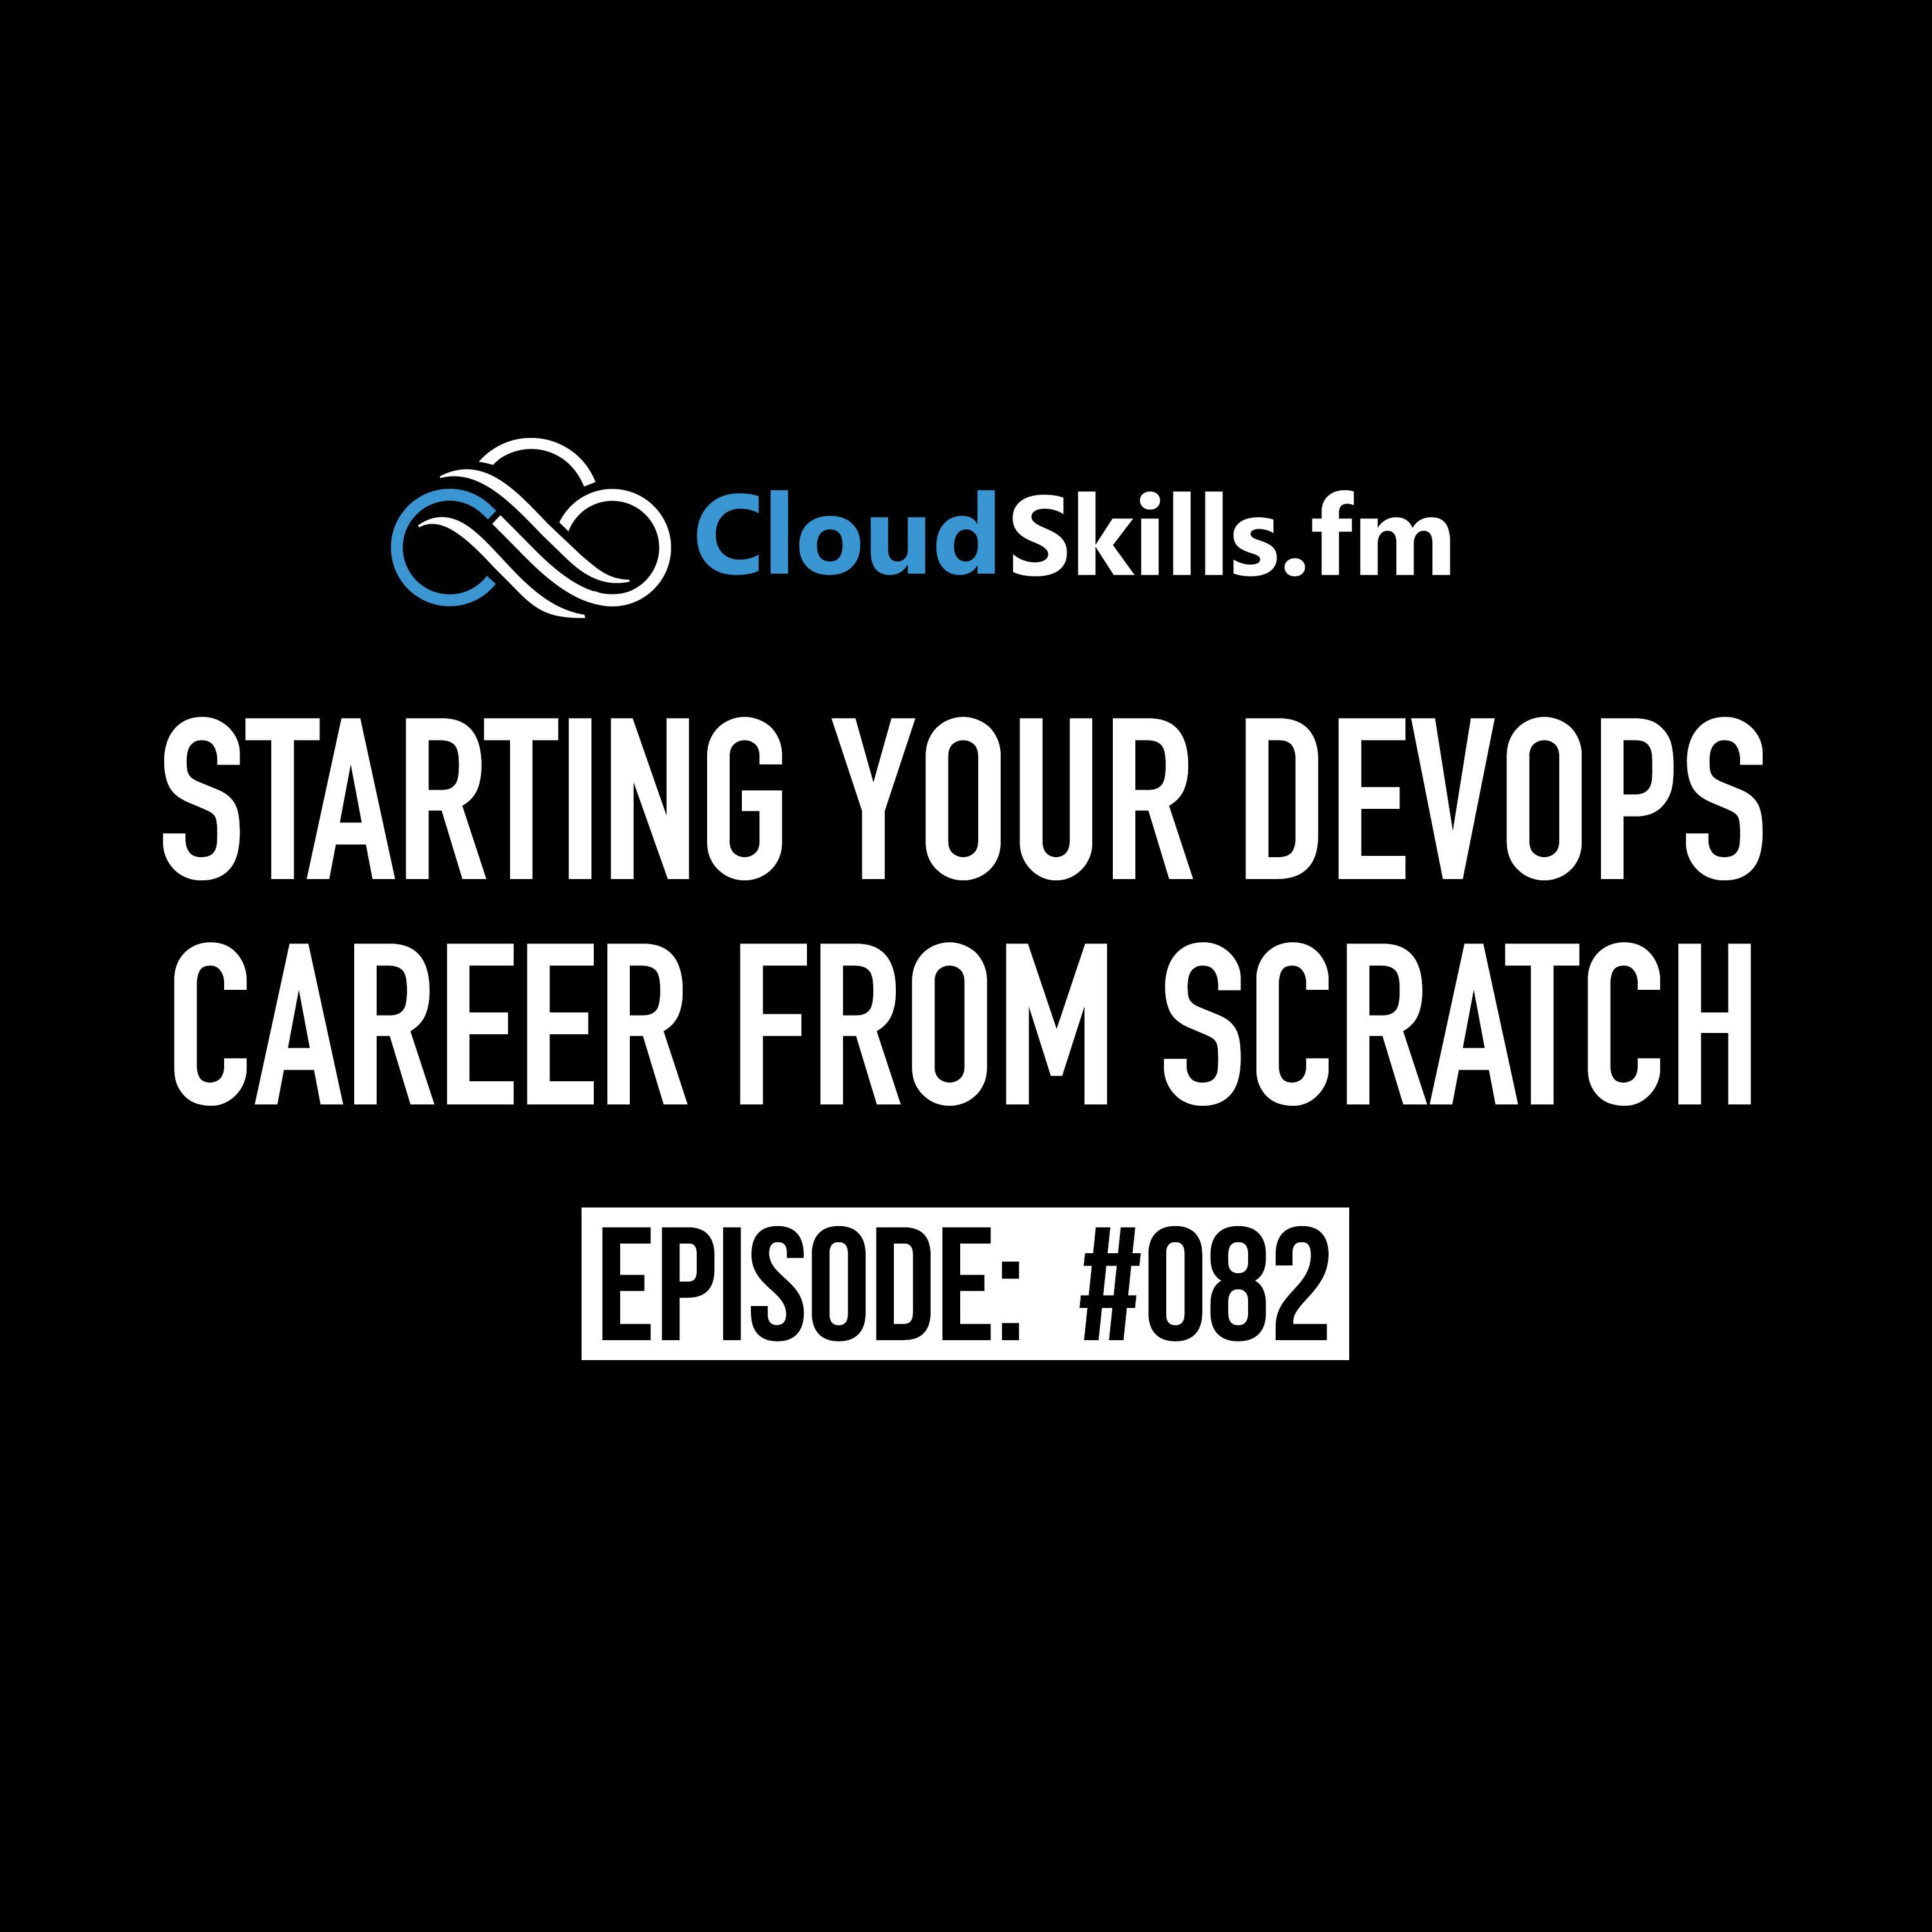 082: Starting Your DevOps Career from Scratch